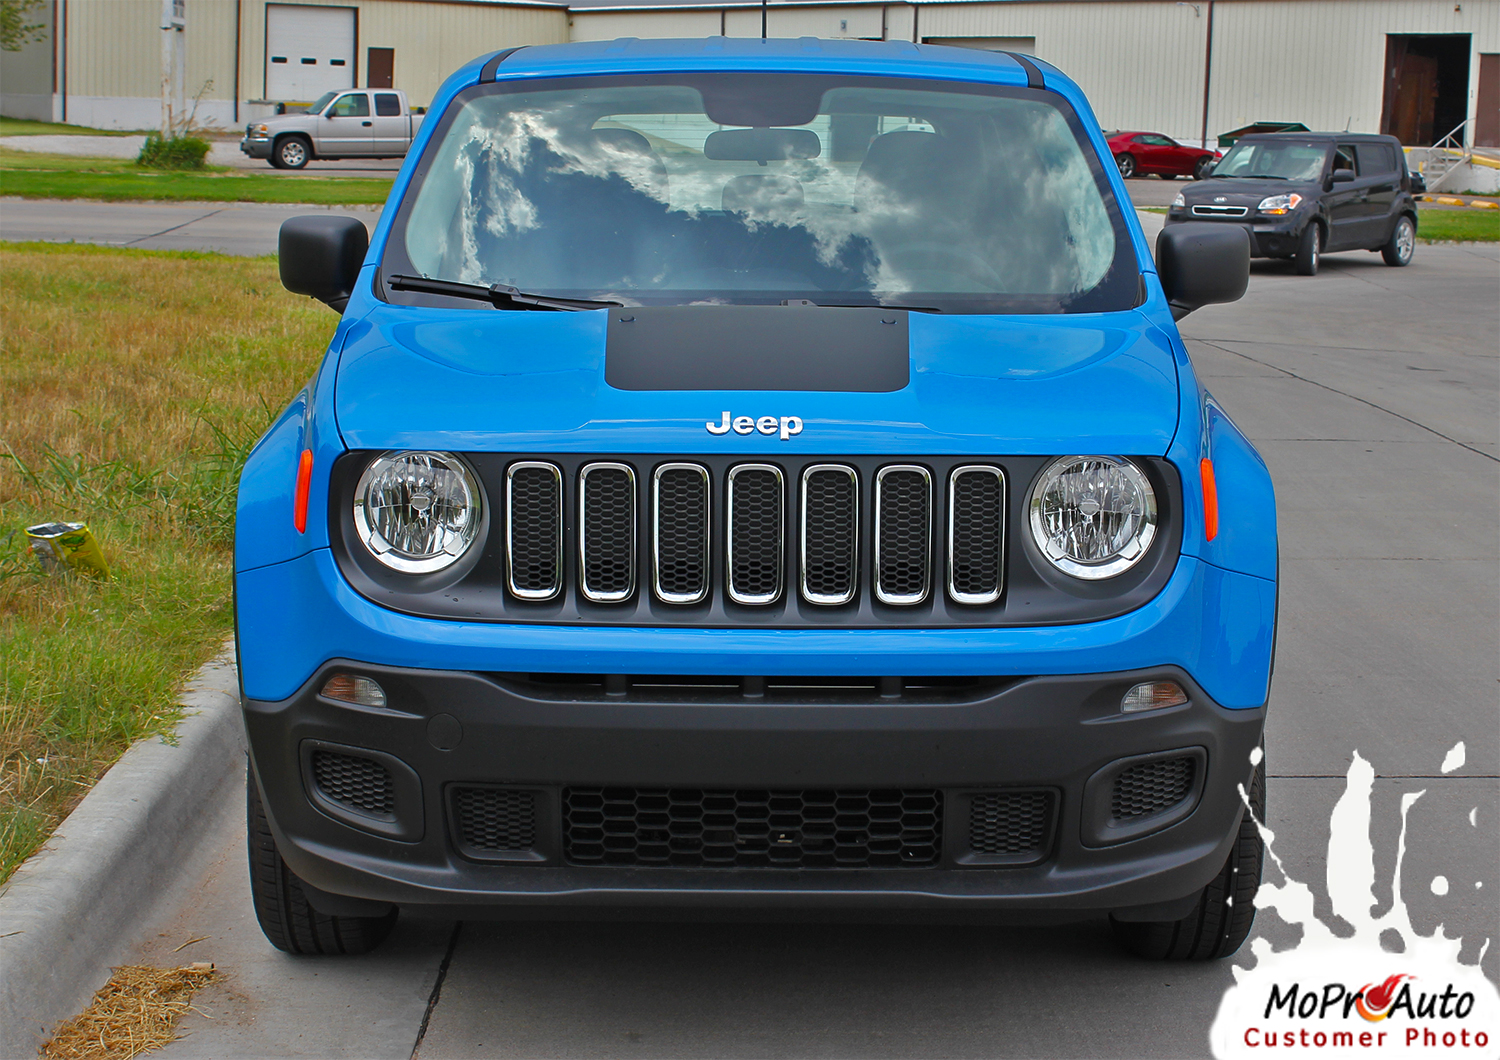 RENEGADE HOOD Jeep Renegade Hood Graphic - MoProAuto Pro Design Series Vinyl Graphics, Stripes and Decals Kit